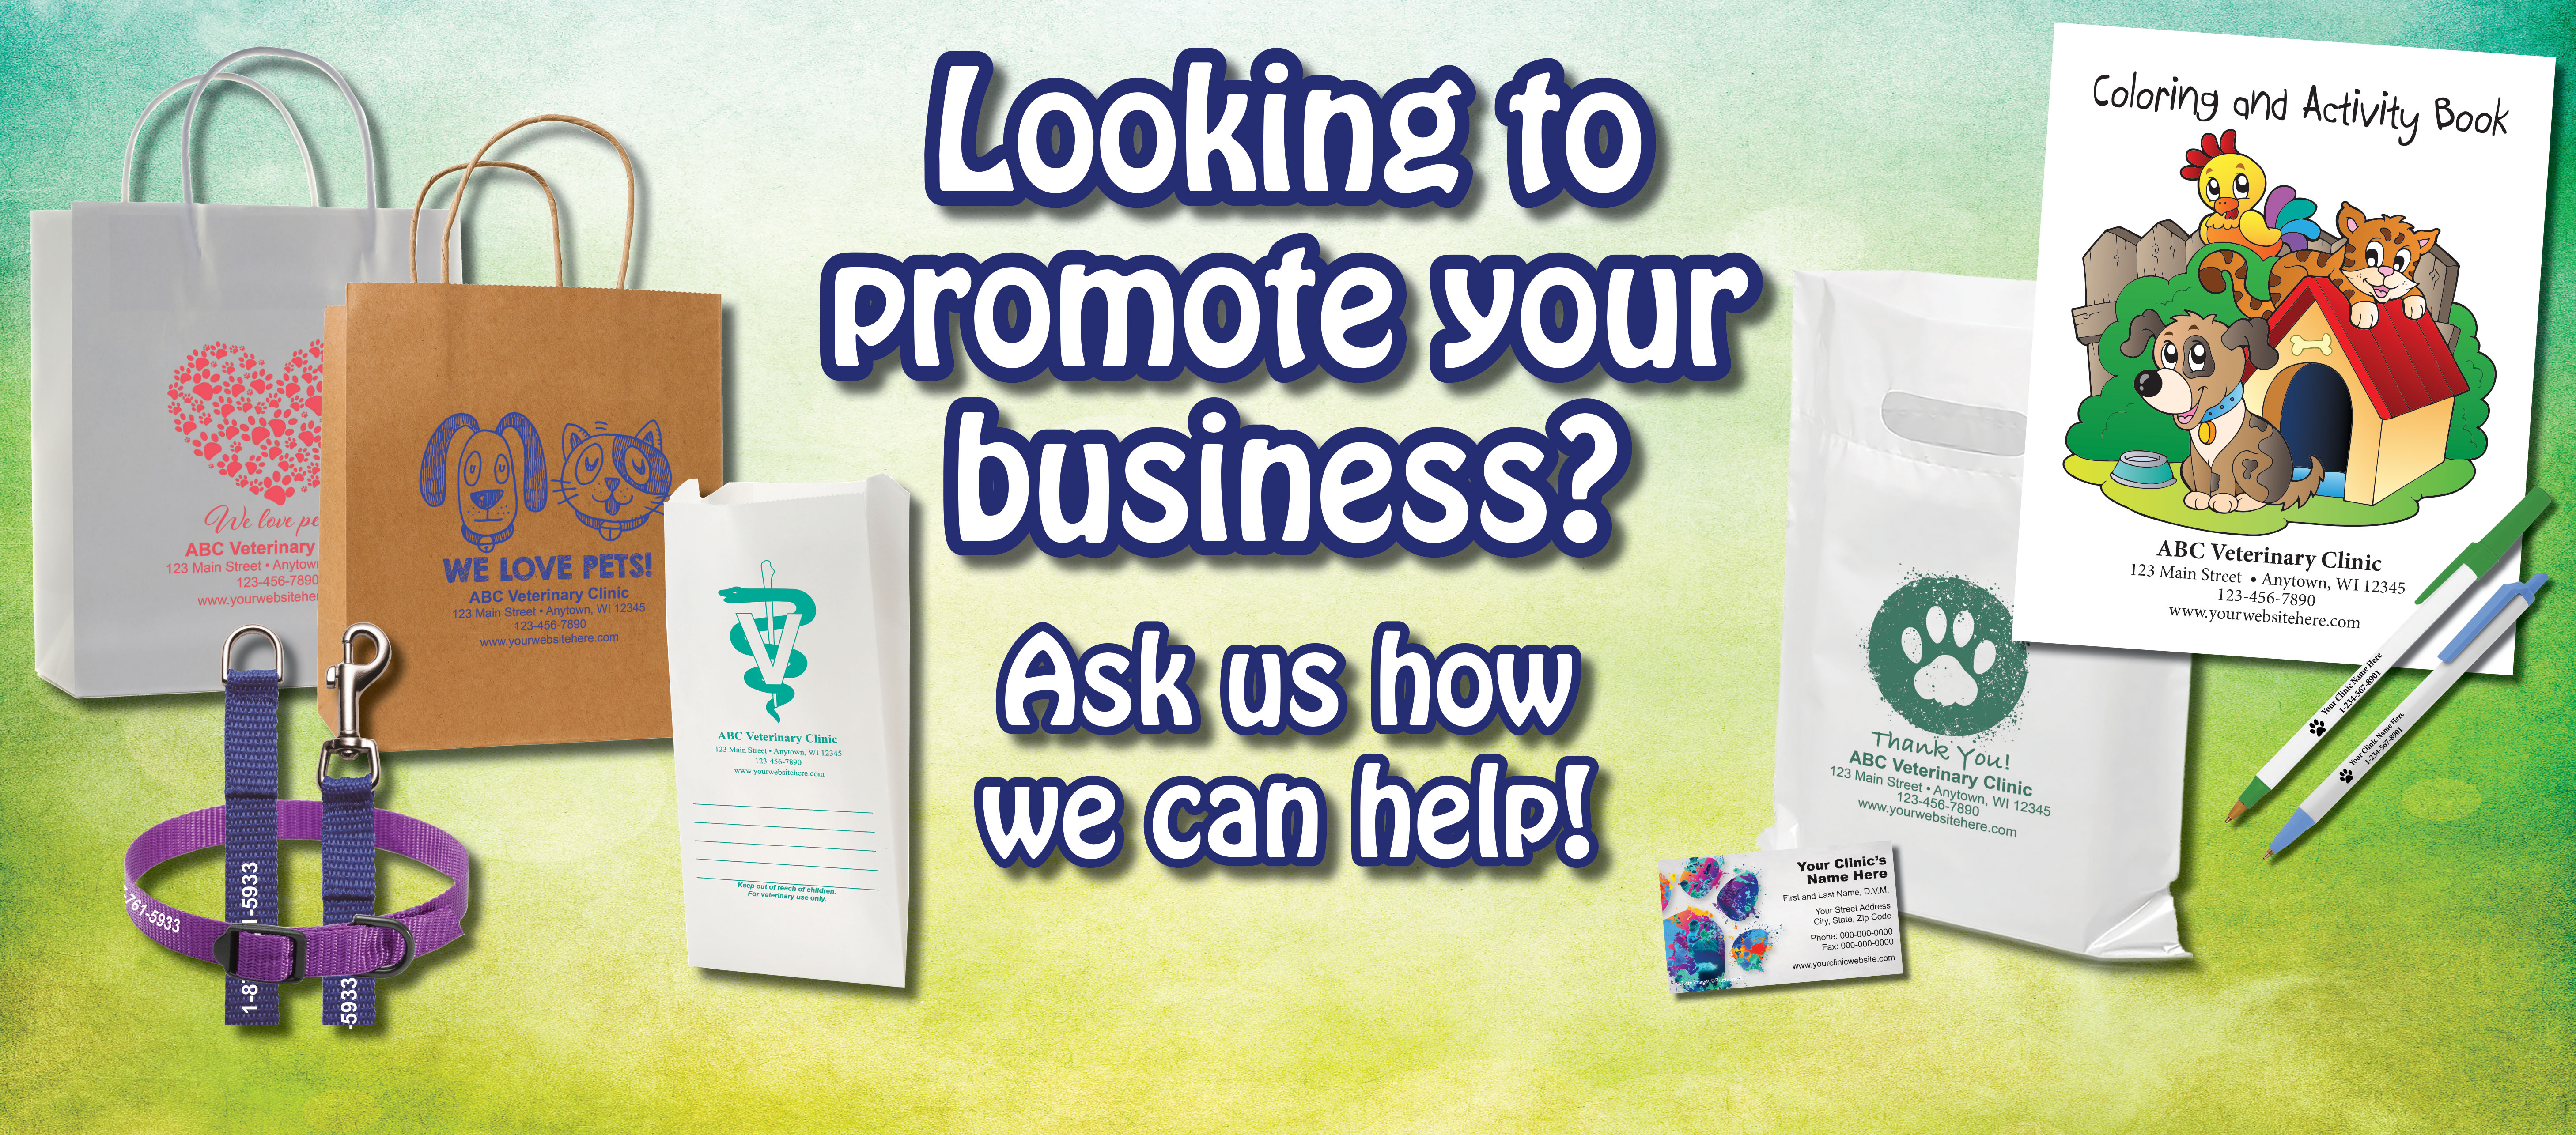 Start The New Year By Promoting Your Business